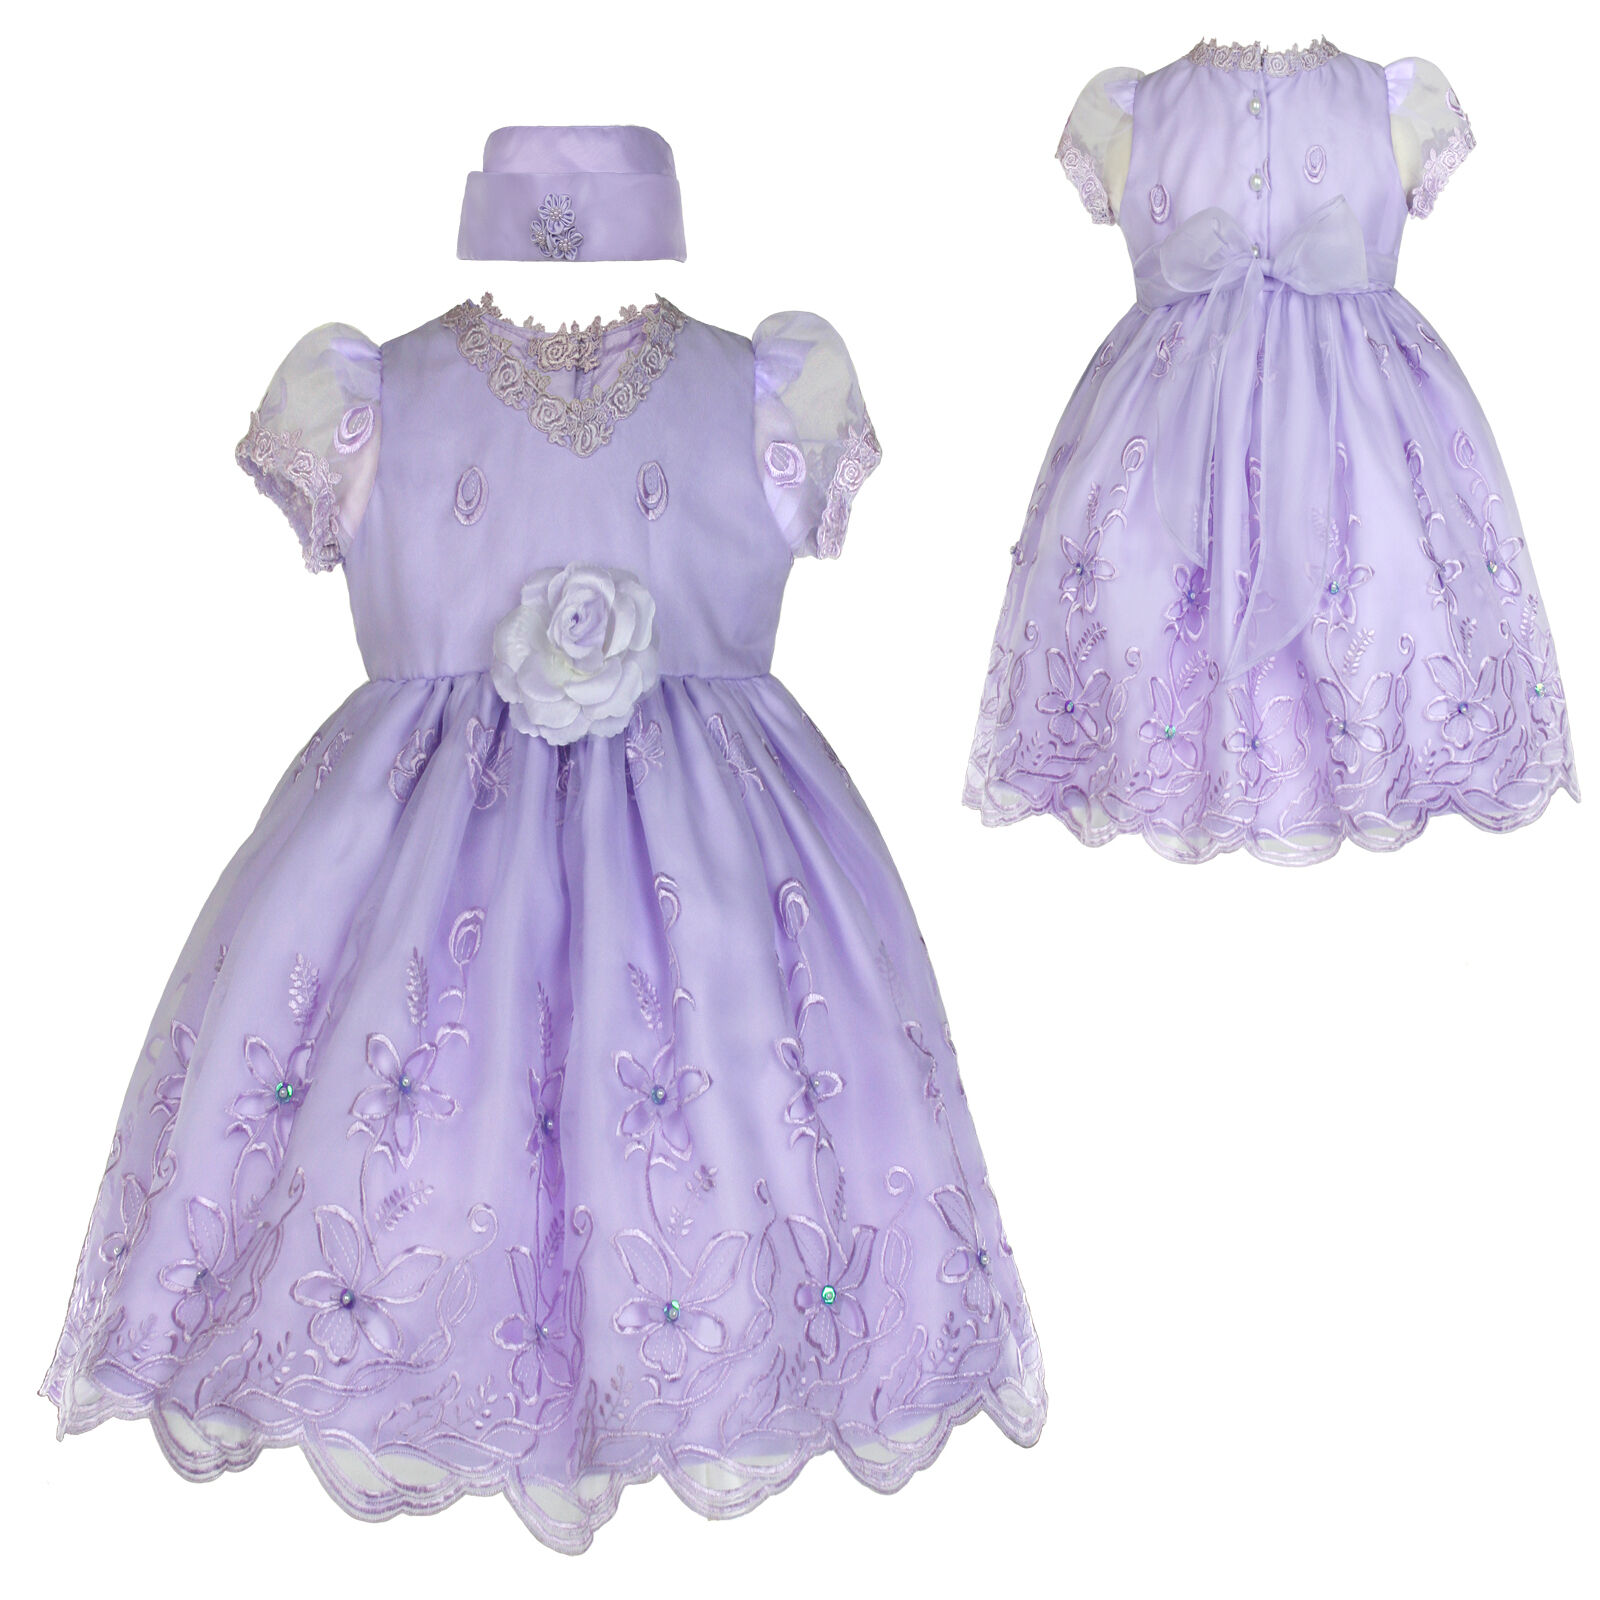 New Infant Girl & Toddler Easter Wedding Formal Party Dress size: S,M,L,XL Lilac